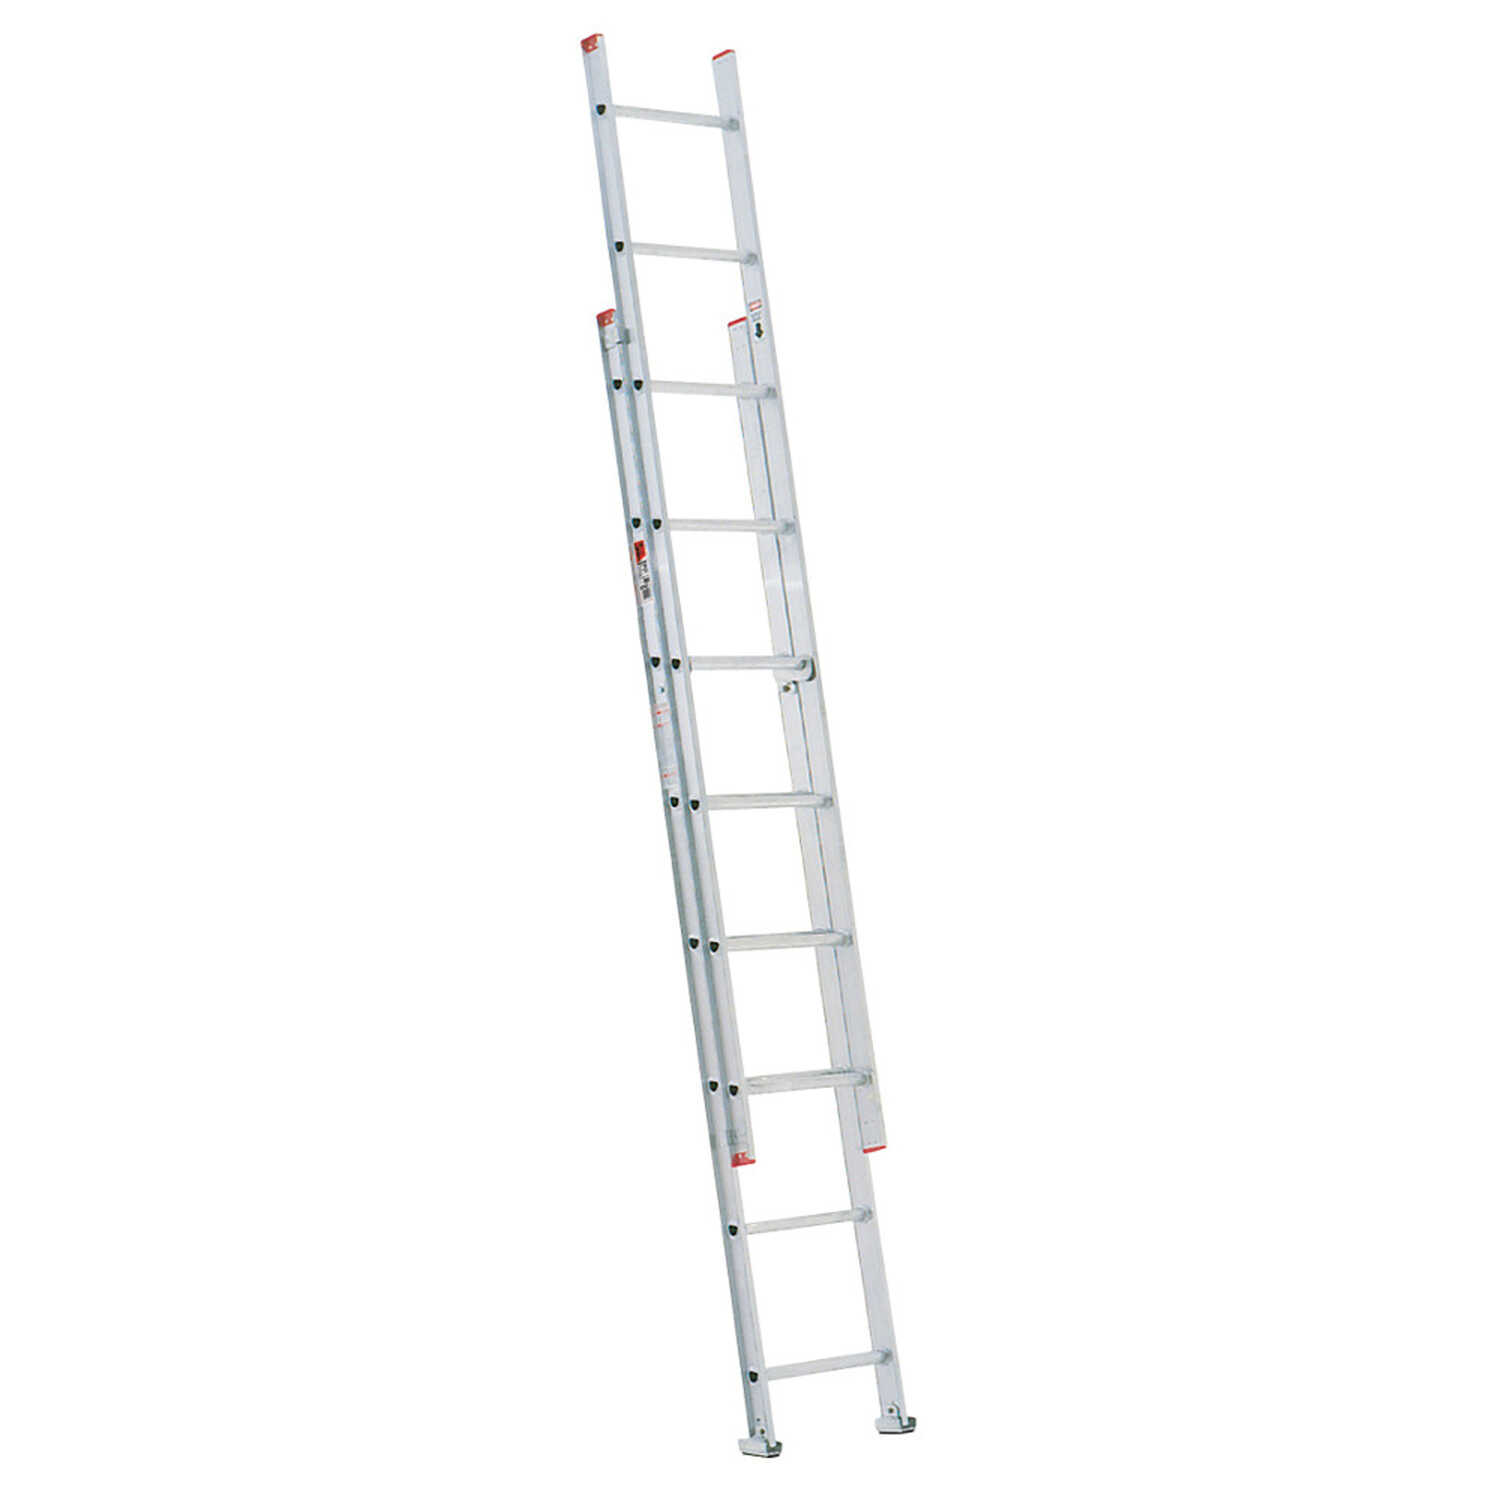 Werner  16 ft. H x 15.75 in. W Aluminum  Extension Ladder  Type III  200 lb.